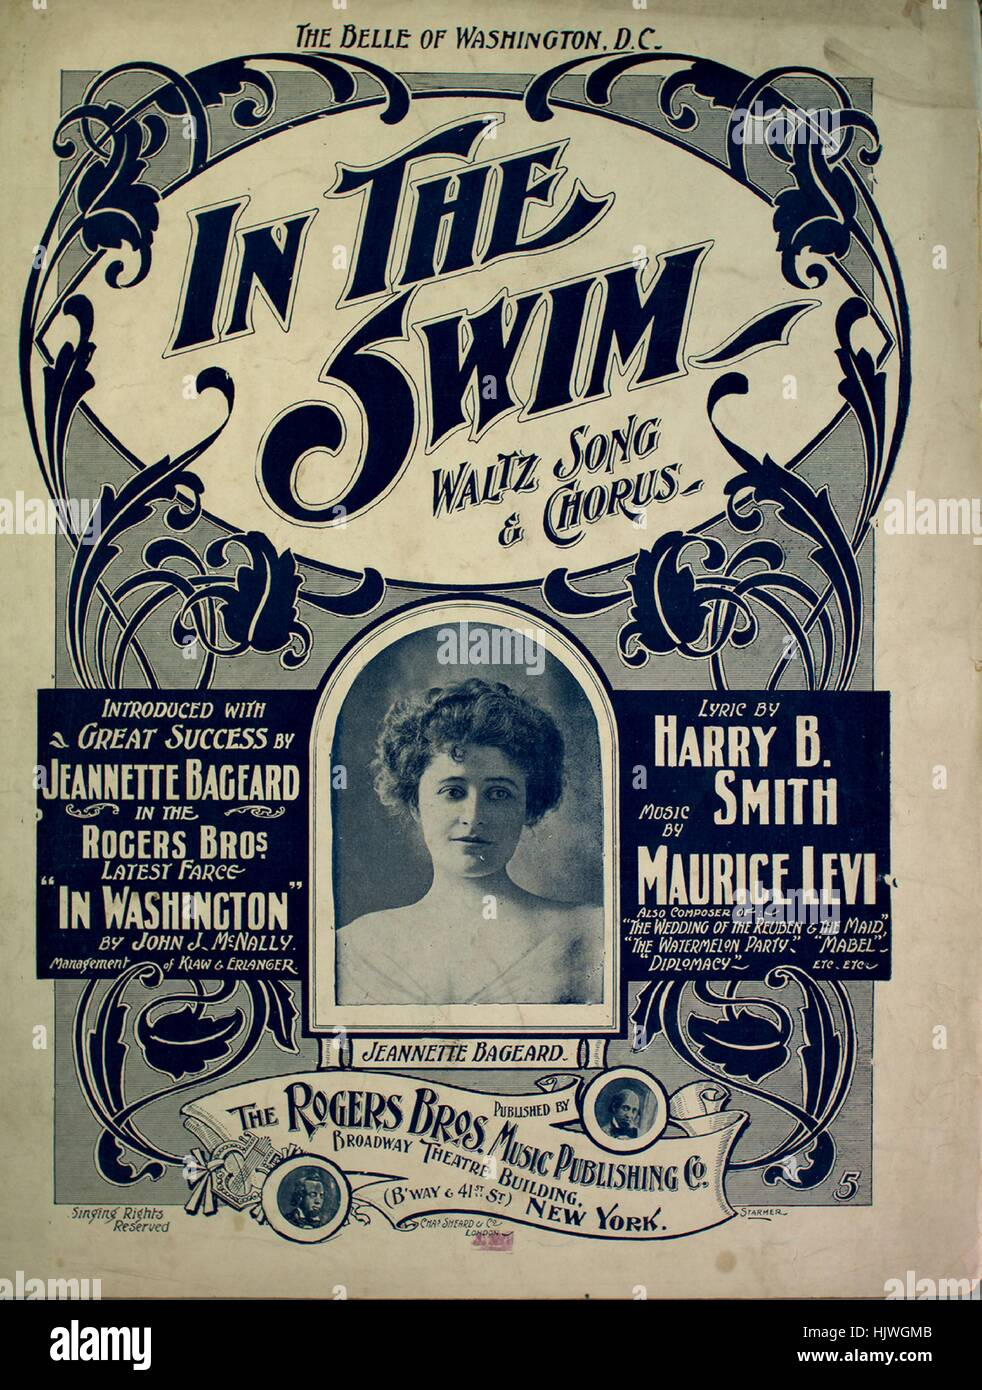 Sheet music cover image of the song 'In the Swim Waltz Song and Chorus ['The Belle of Washington, DC]', - Stock Image